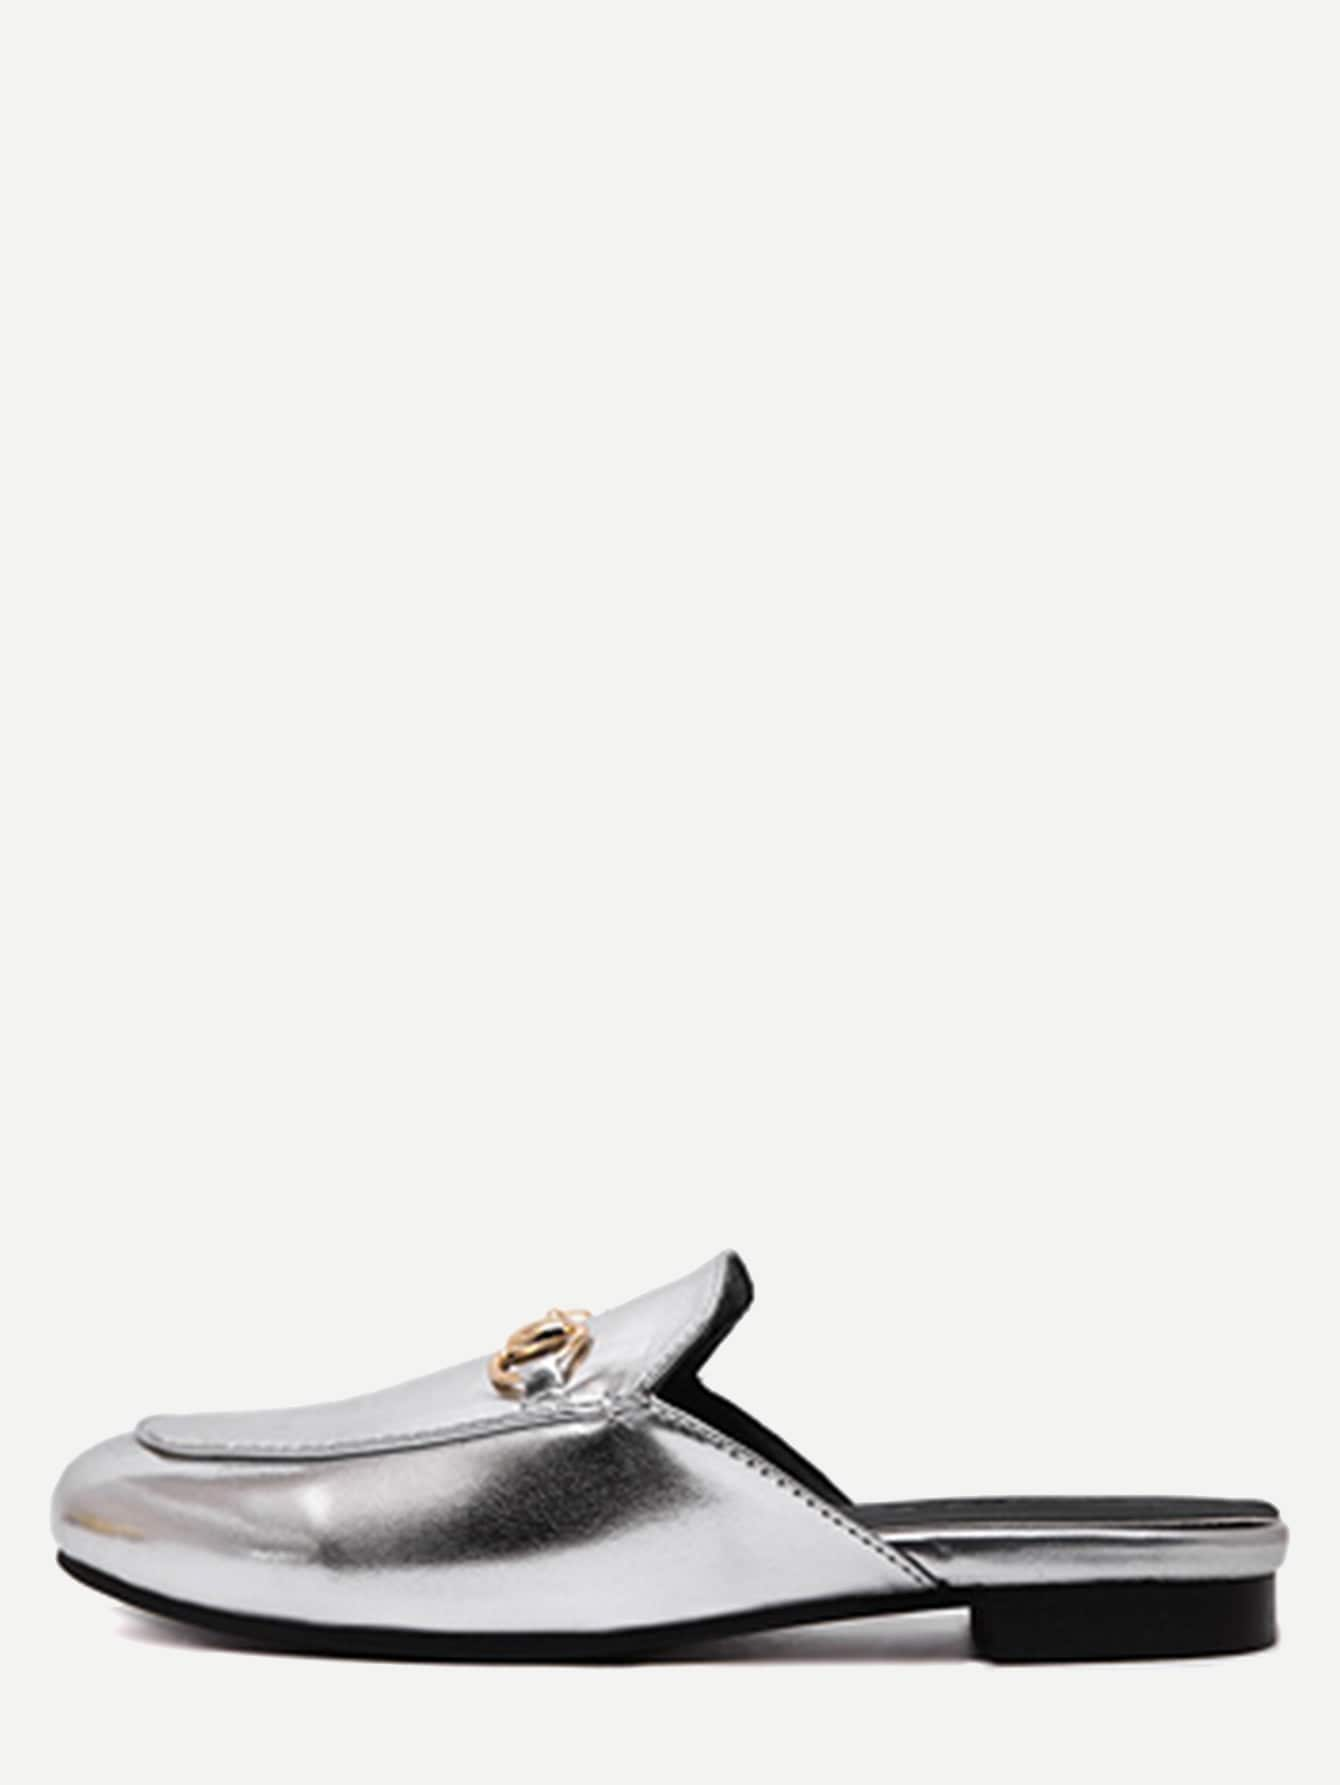 Image of Silver Faux Leather Flat Loafer Slippers